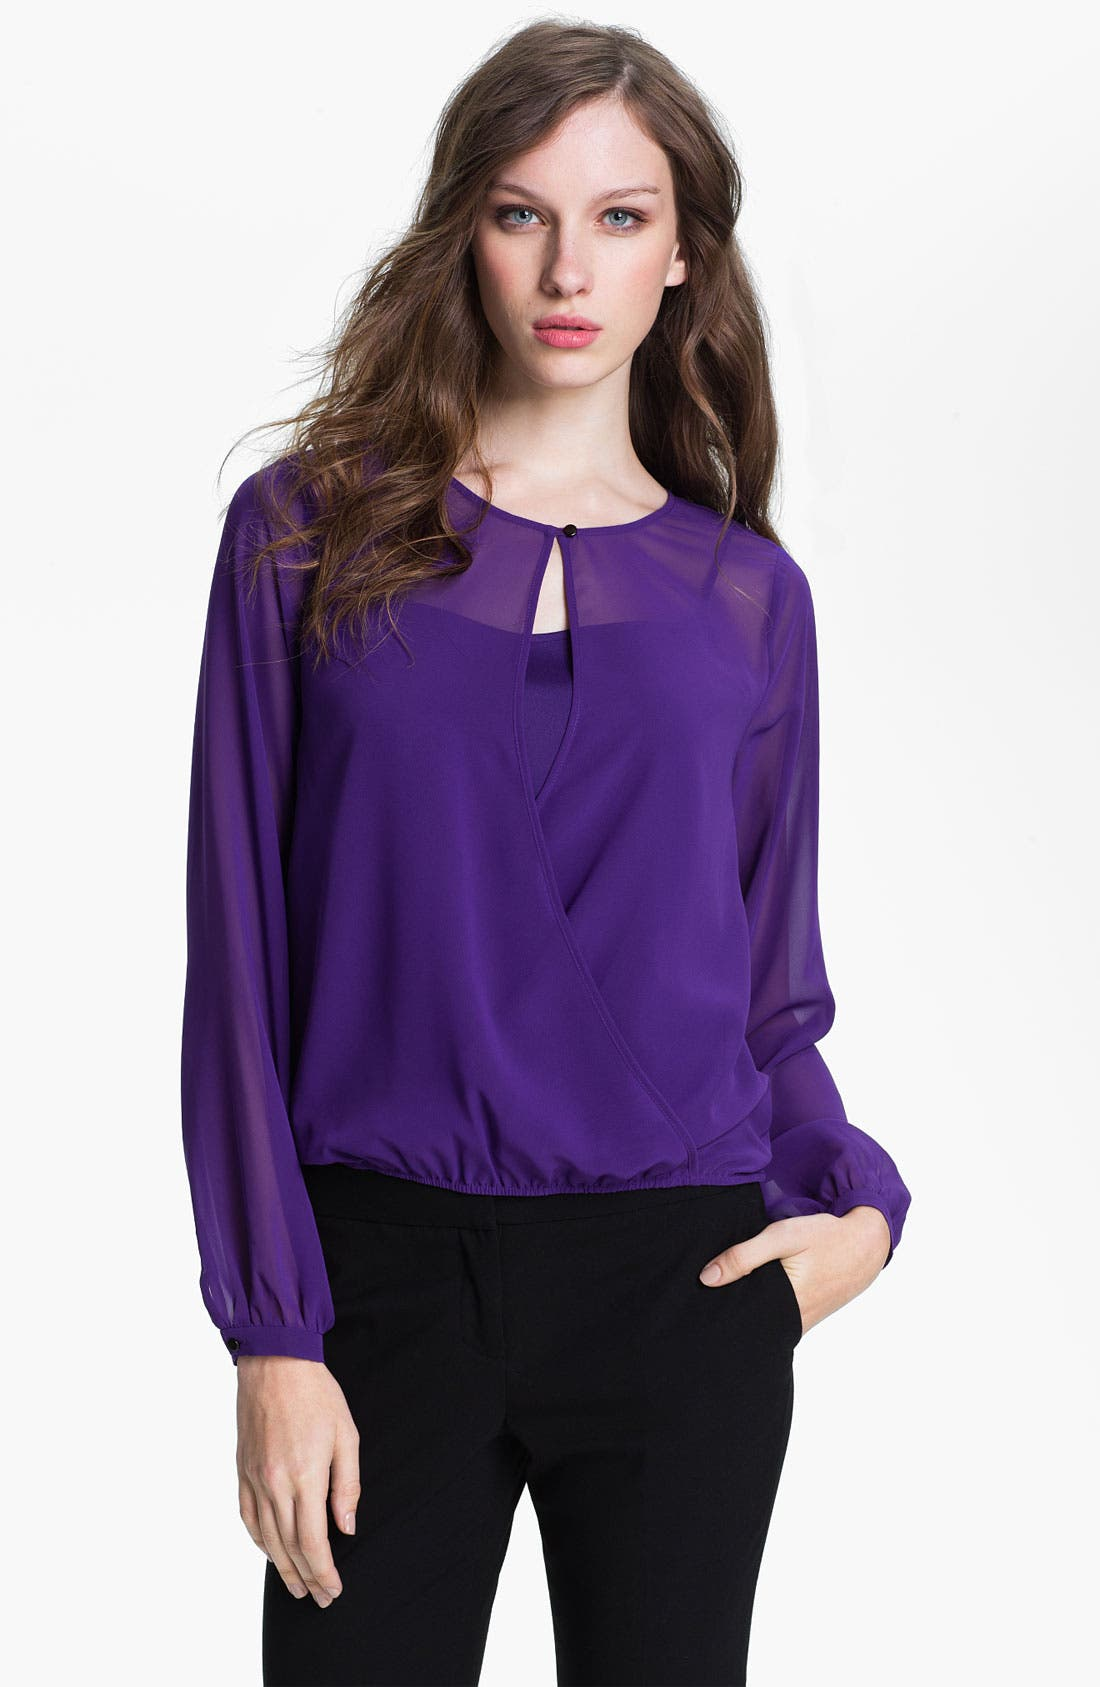 Main Image - Kenneth Cole New York 'Candace' Blouse & Camisole